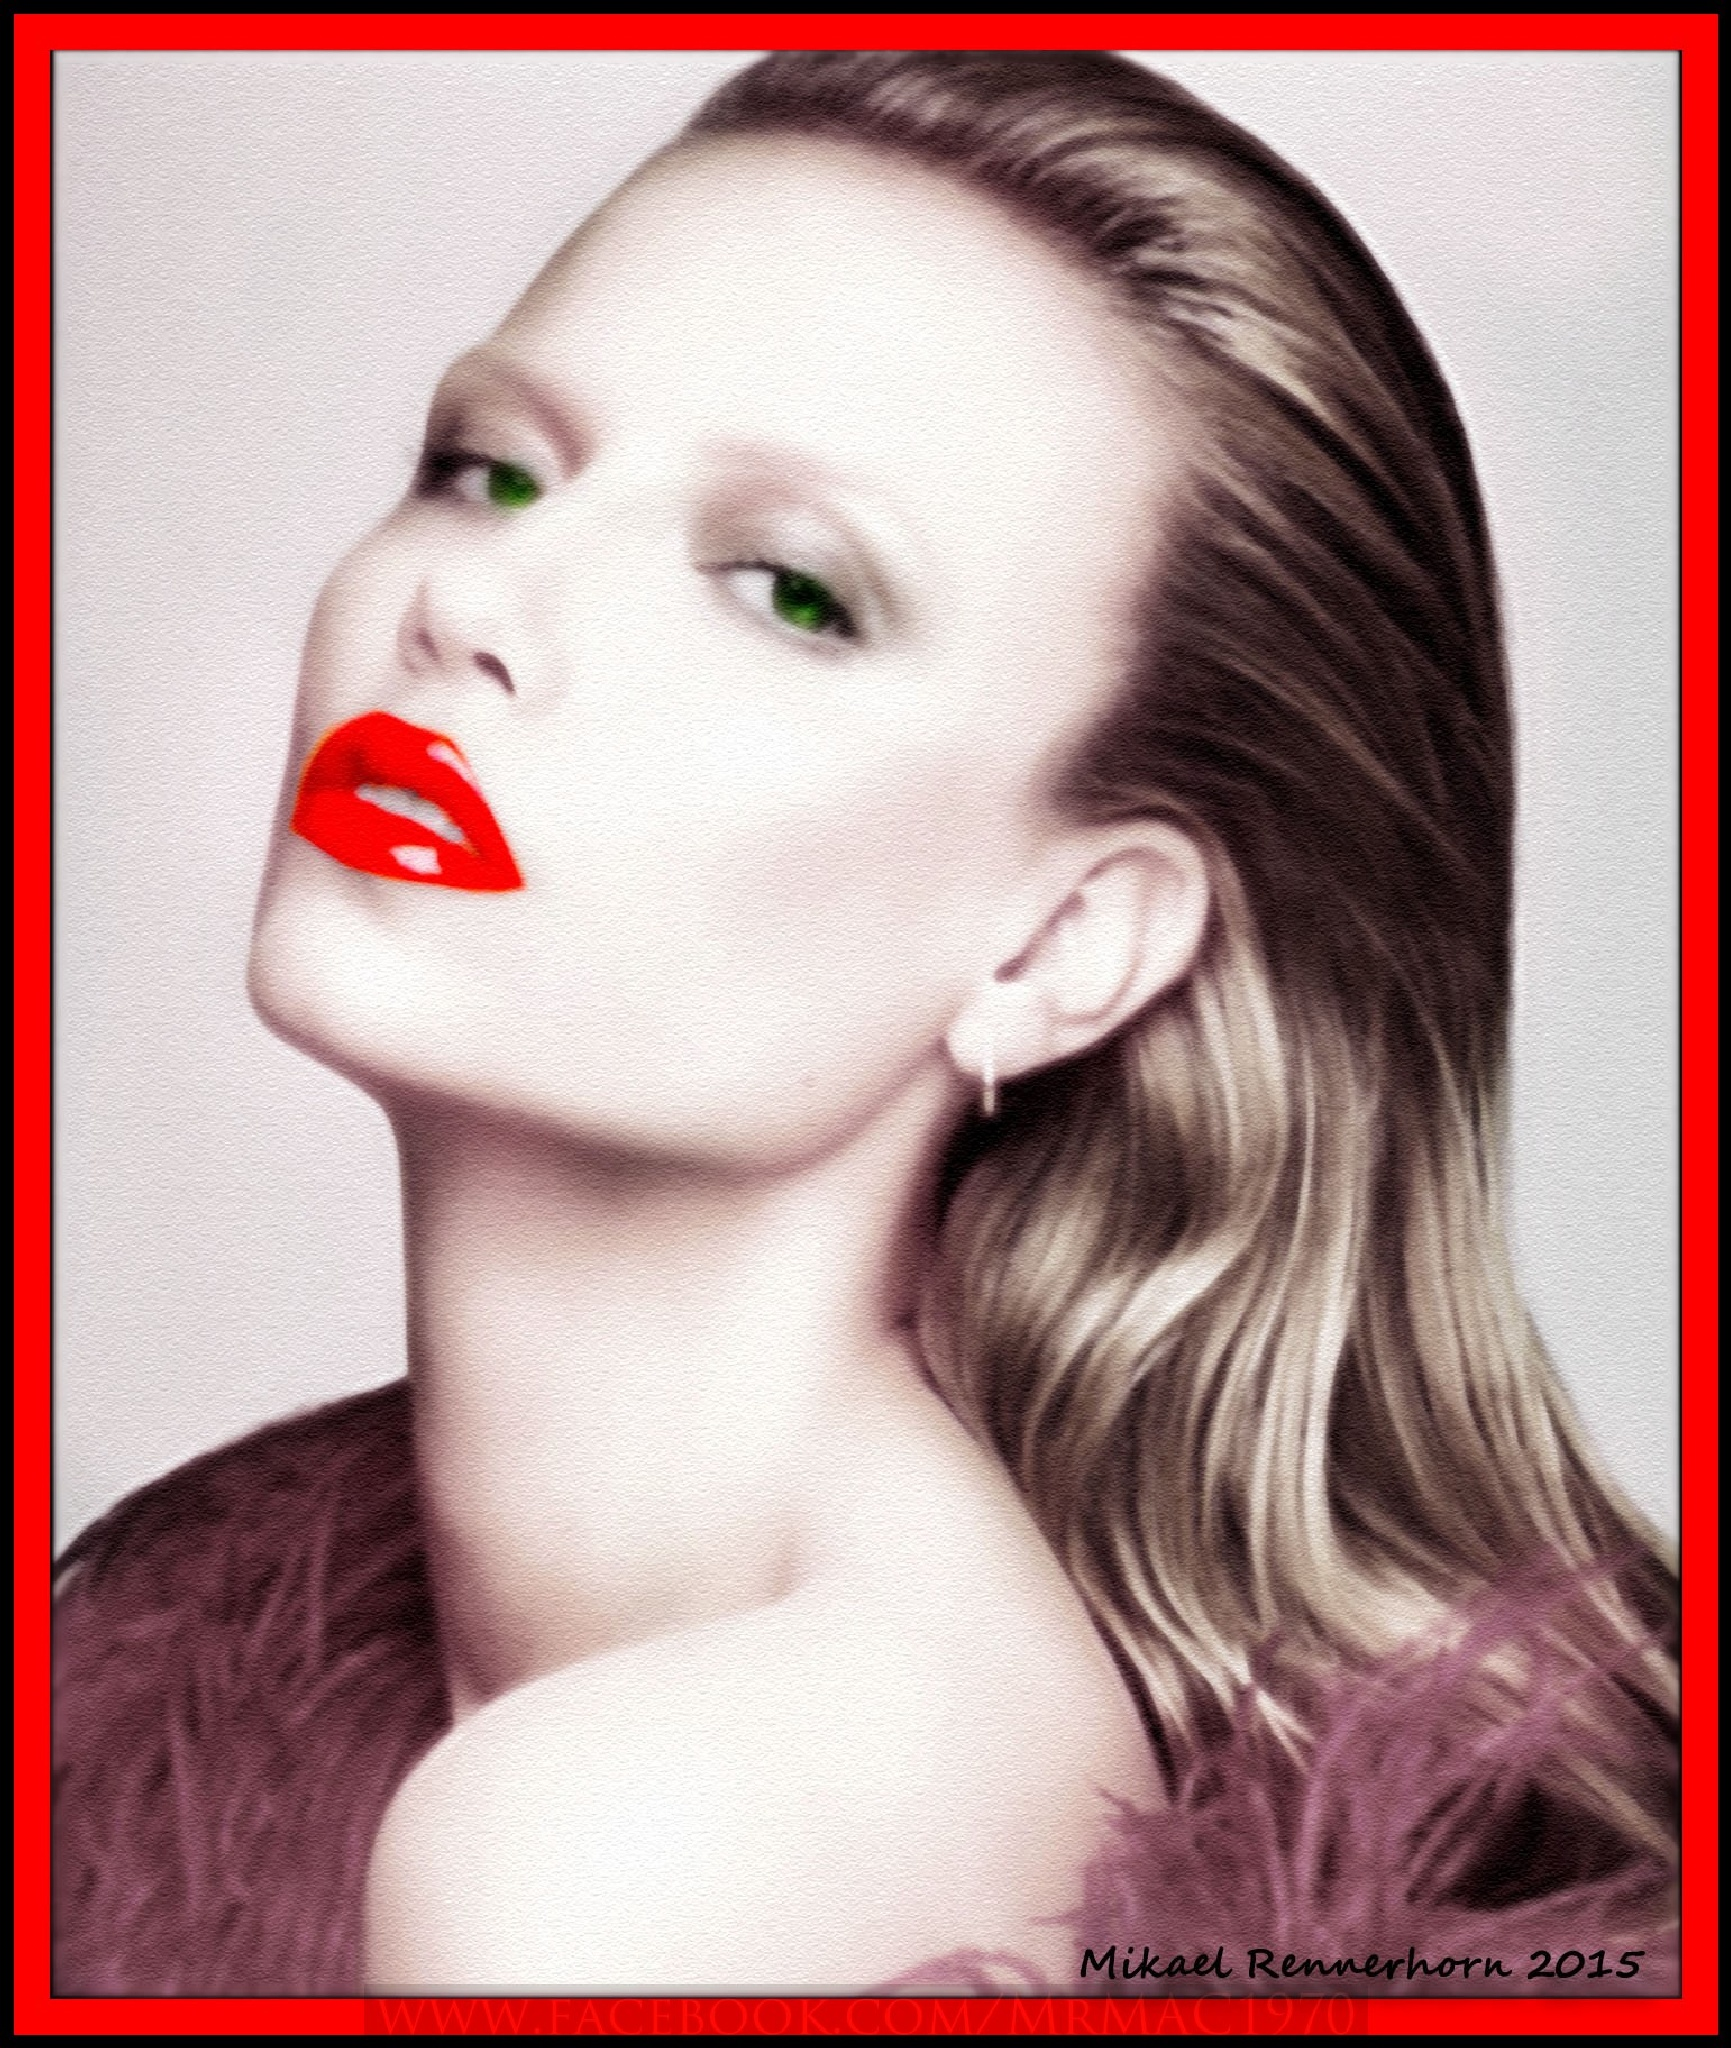 Mirrored Natacha Poly, picture from Vogue. Filters and other colors by Mikael Rennerhorn